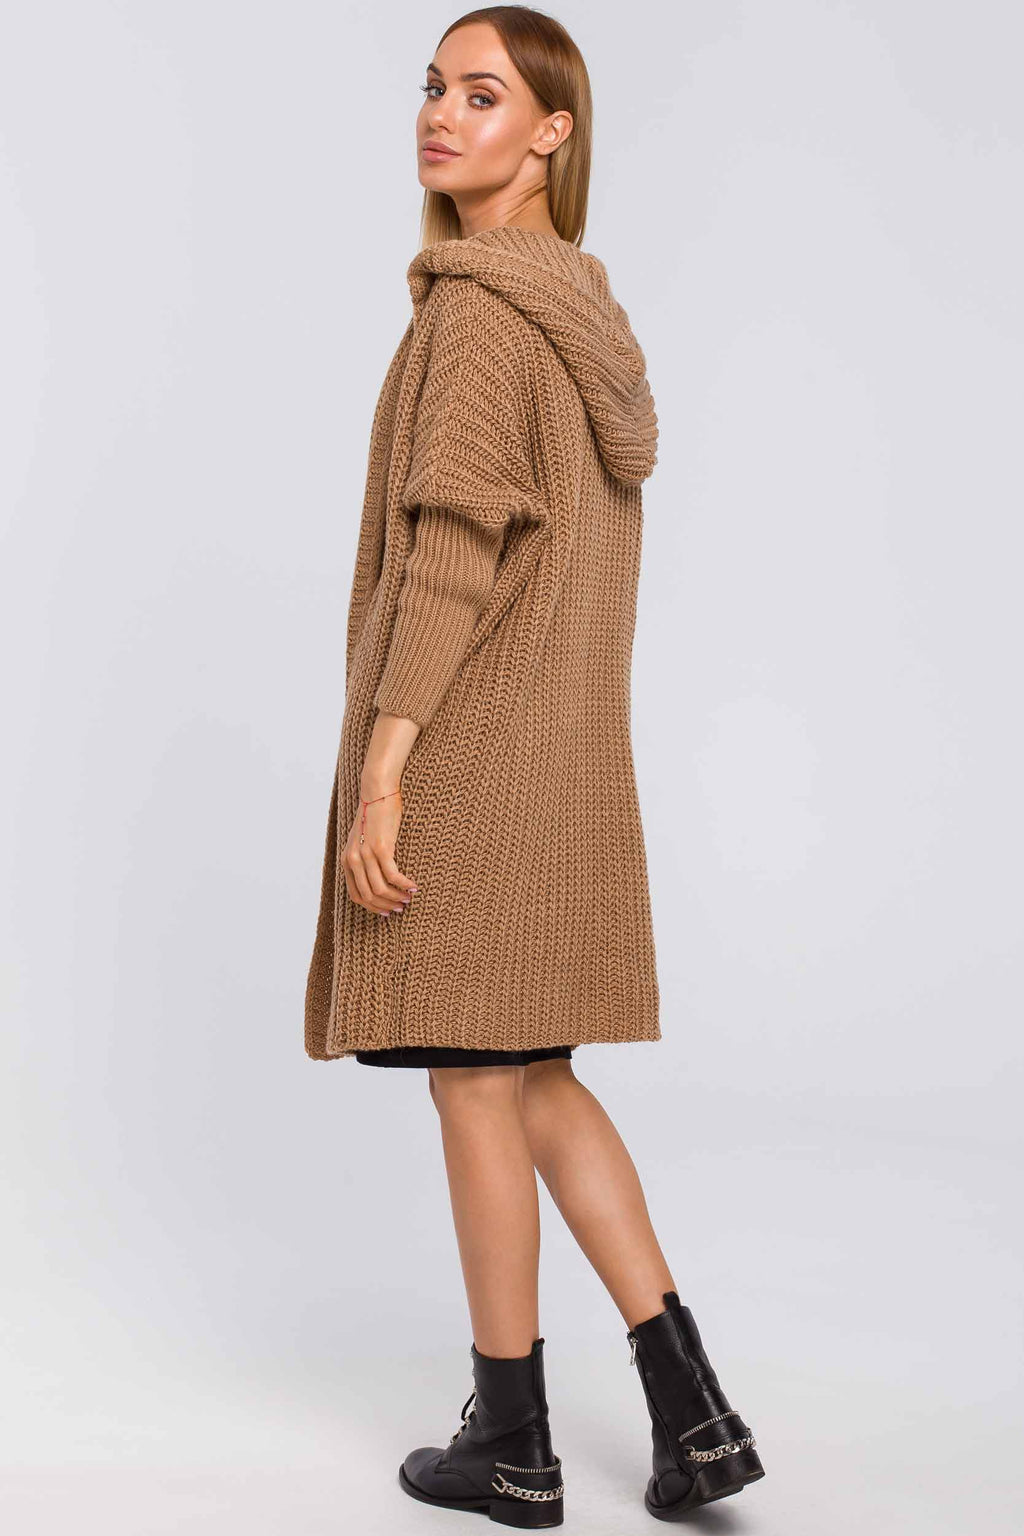 Camel Mid Length Open Front Cardigan With A Hood - So Chic Boutique